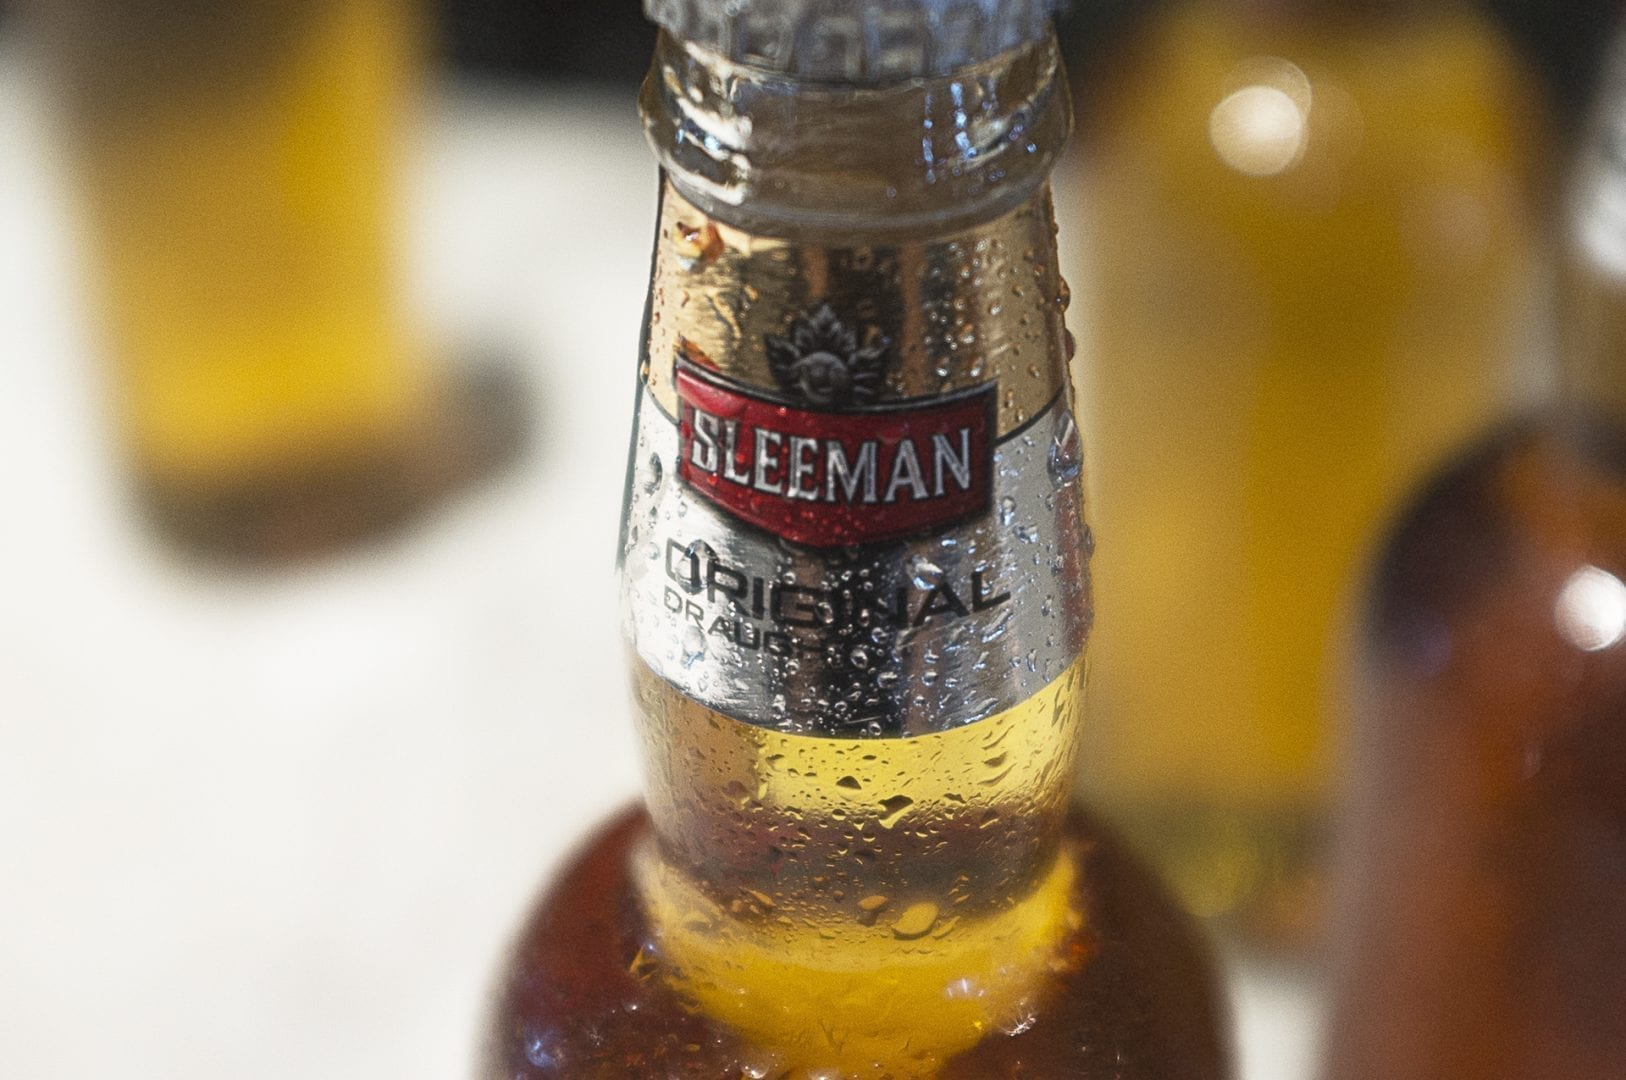 Sleeman beer bottle design concept